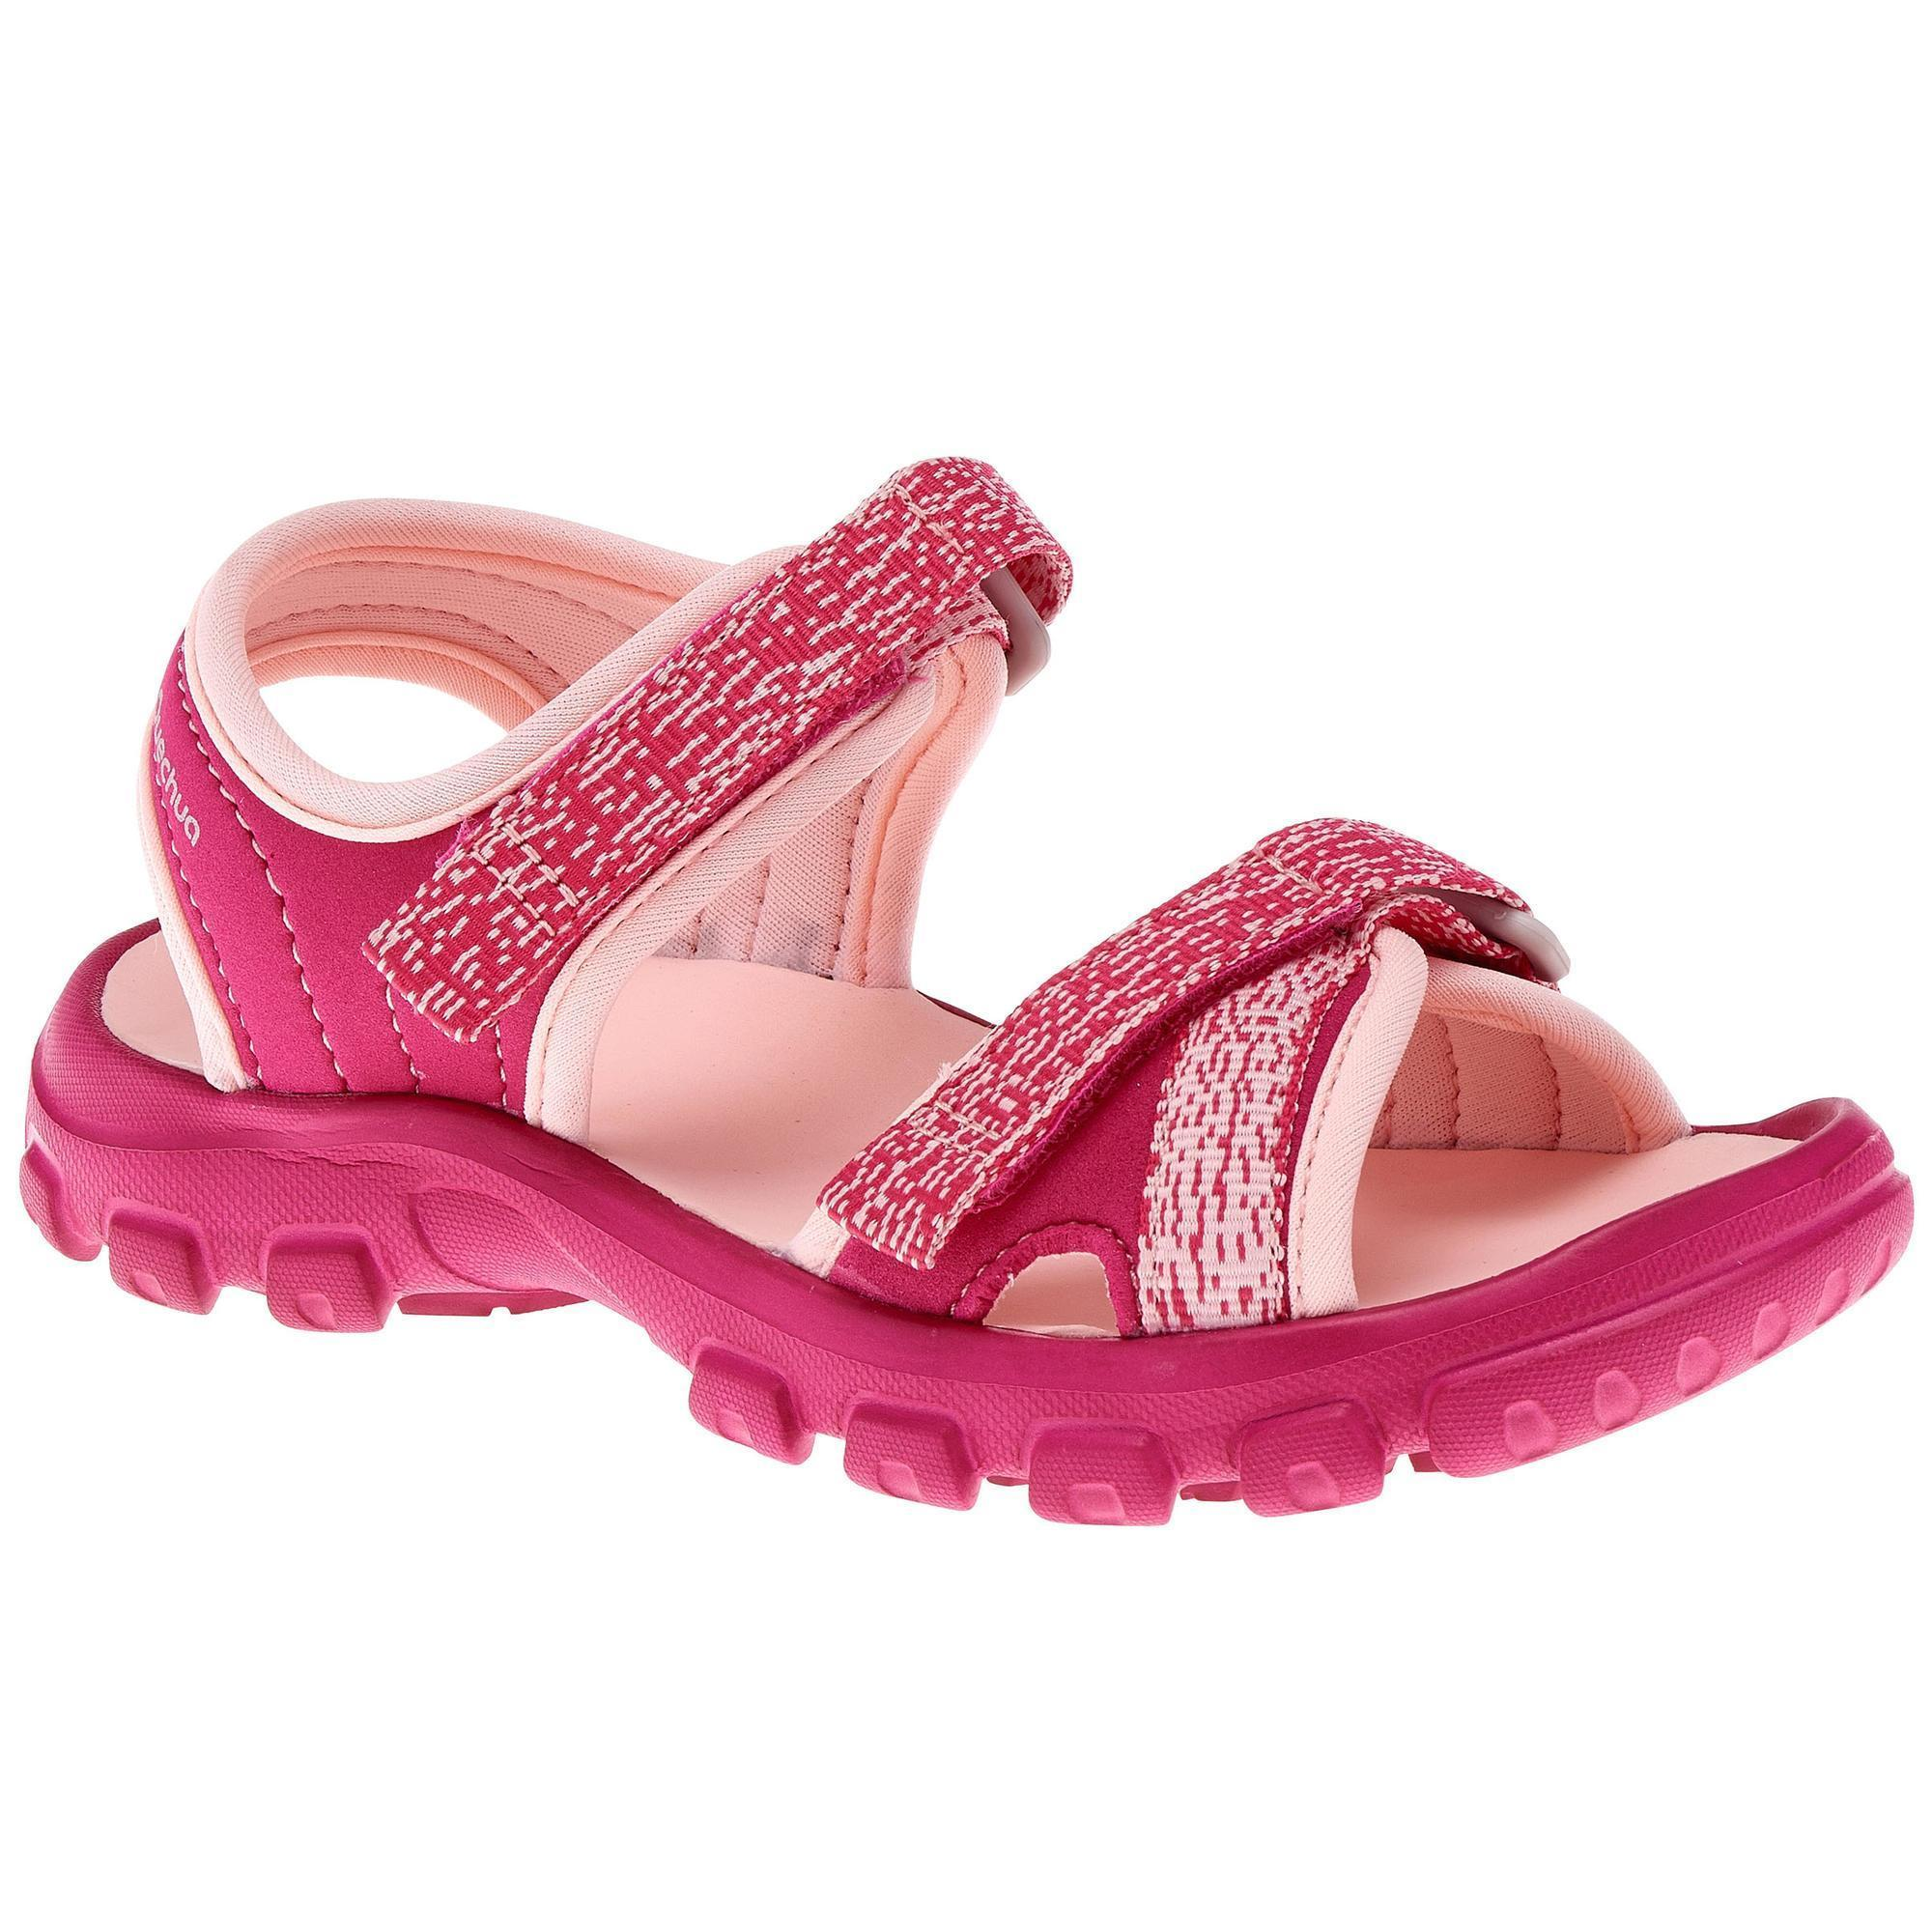 Nh100 Kid Hiking Sandals Pink Quechua